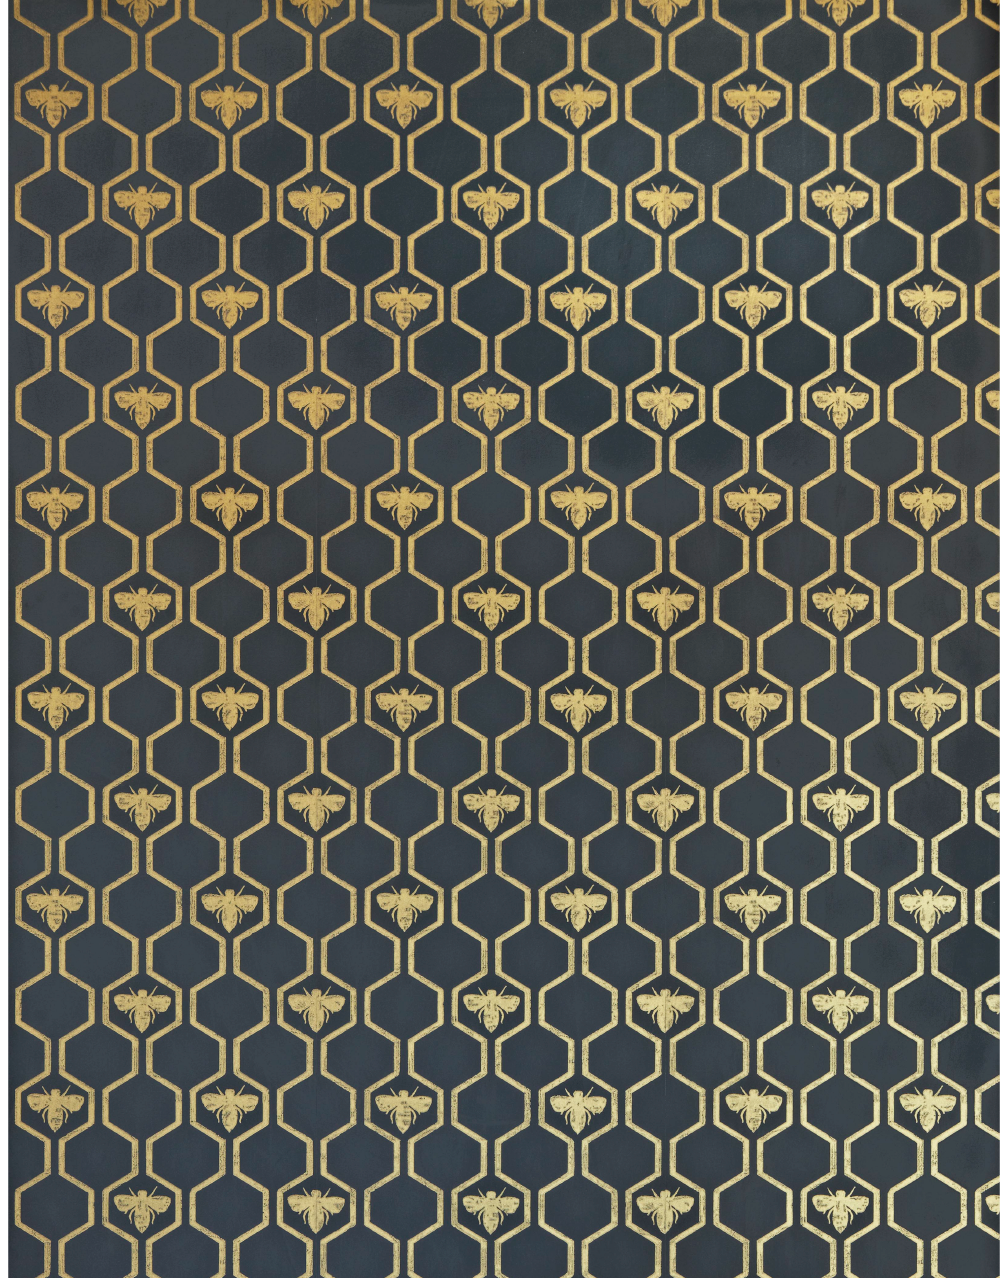 Honey Bees, Gold on Charcoal Wallpaper stencil